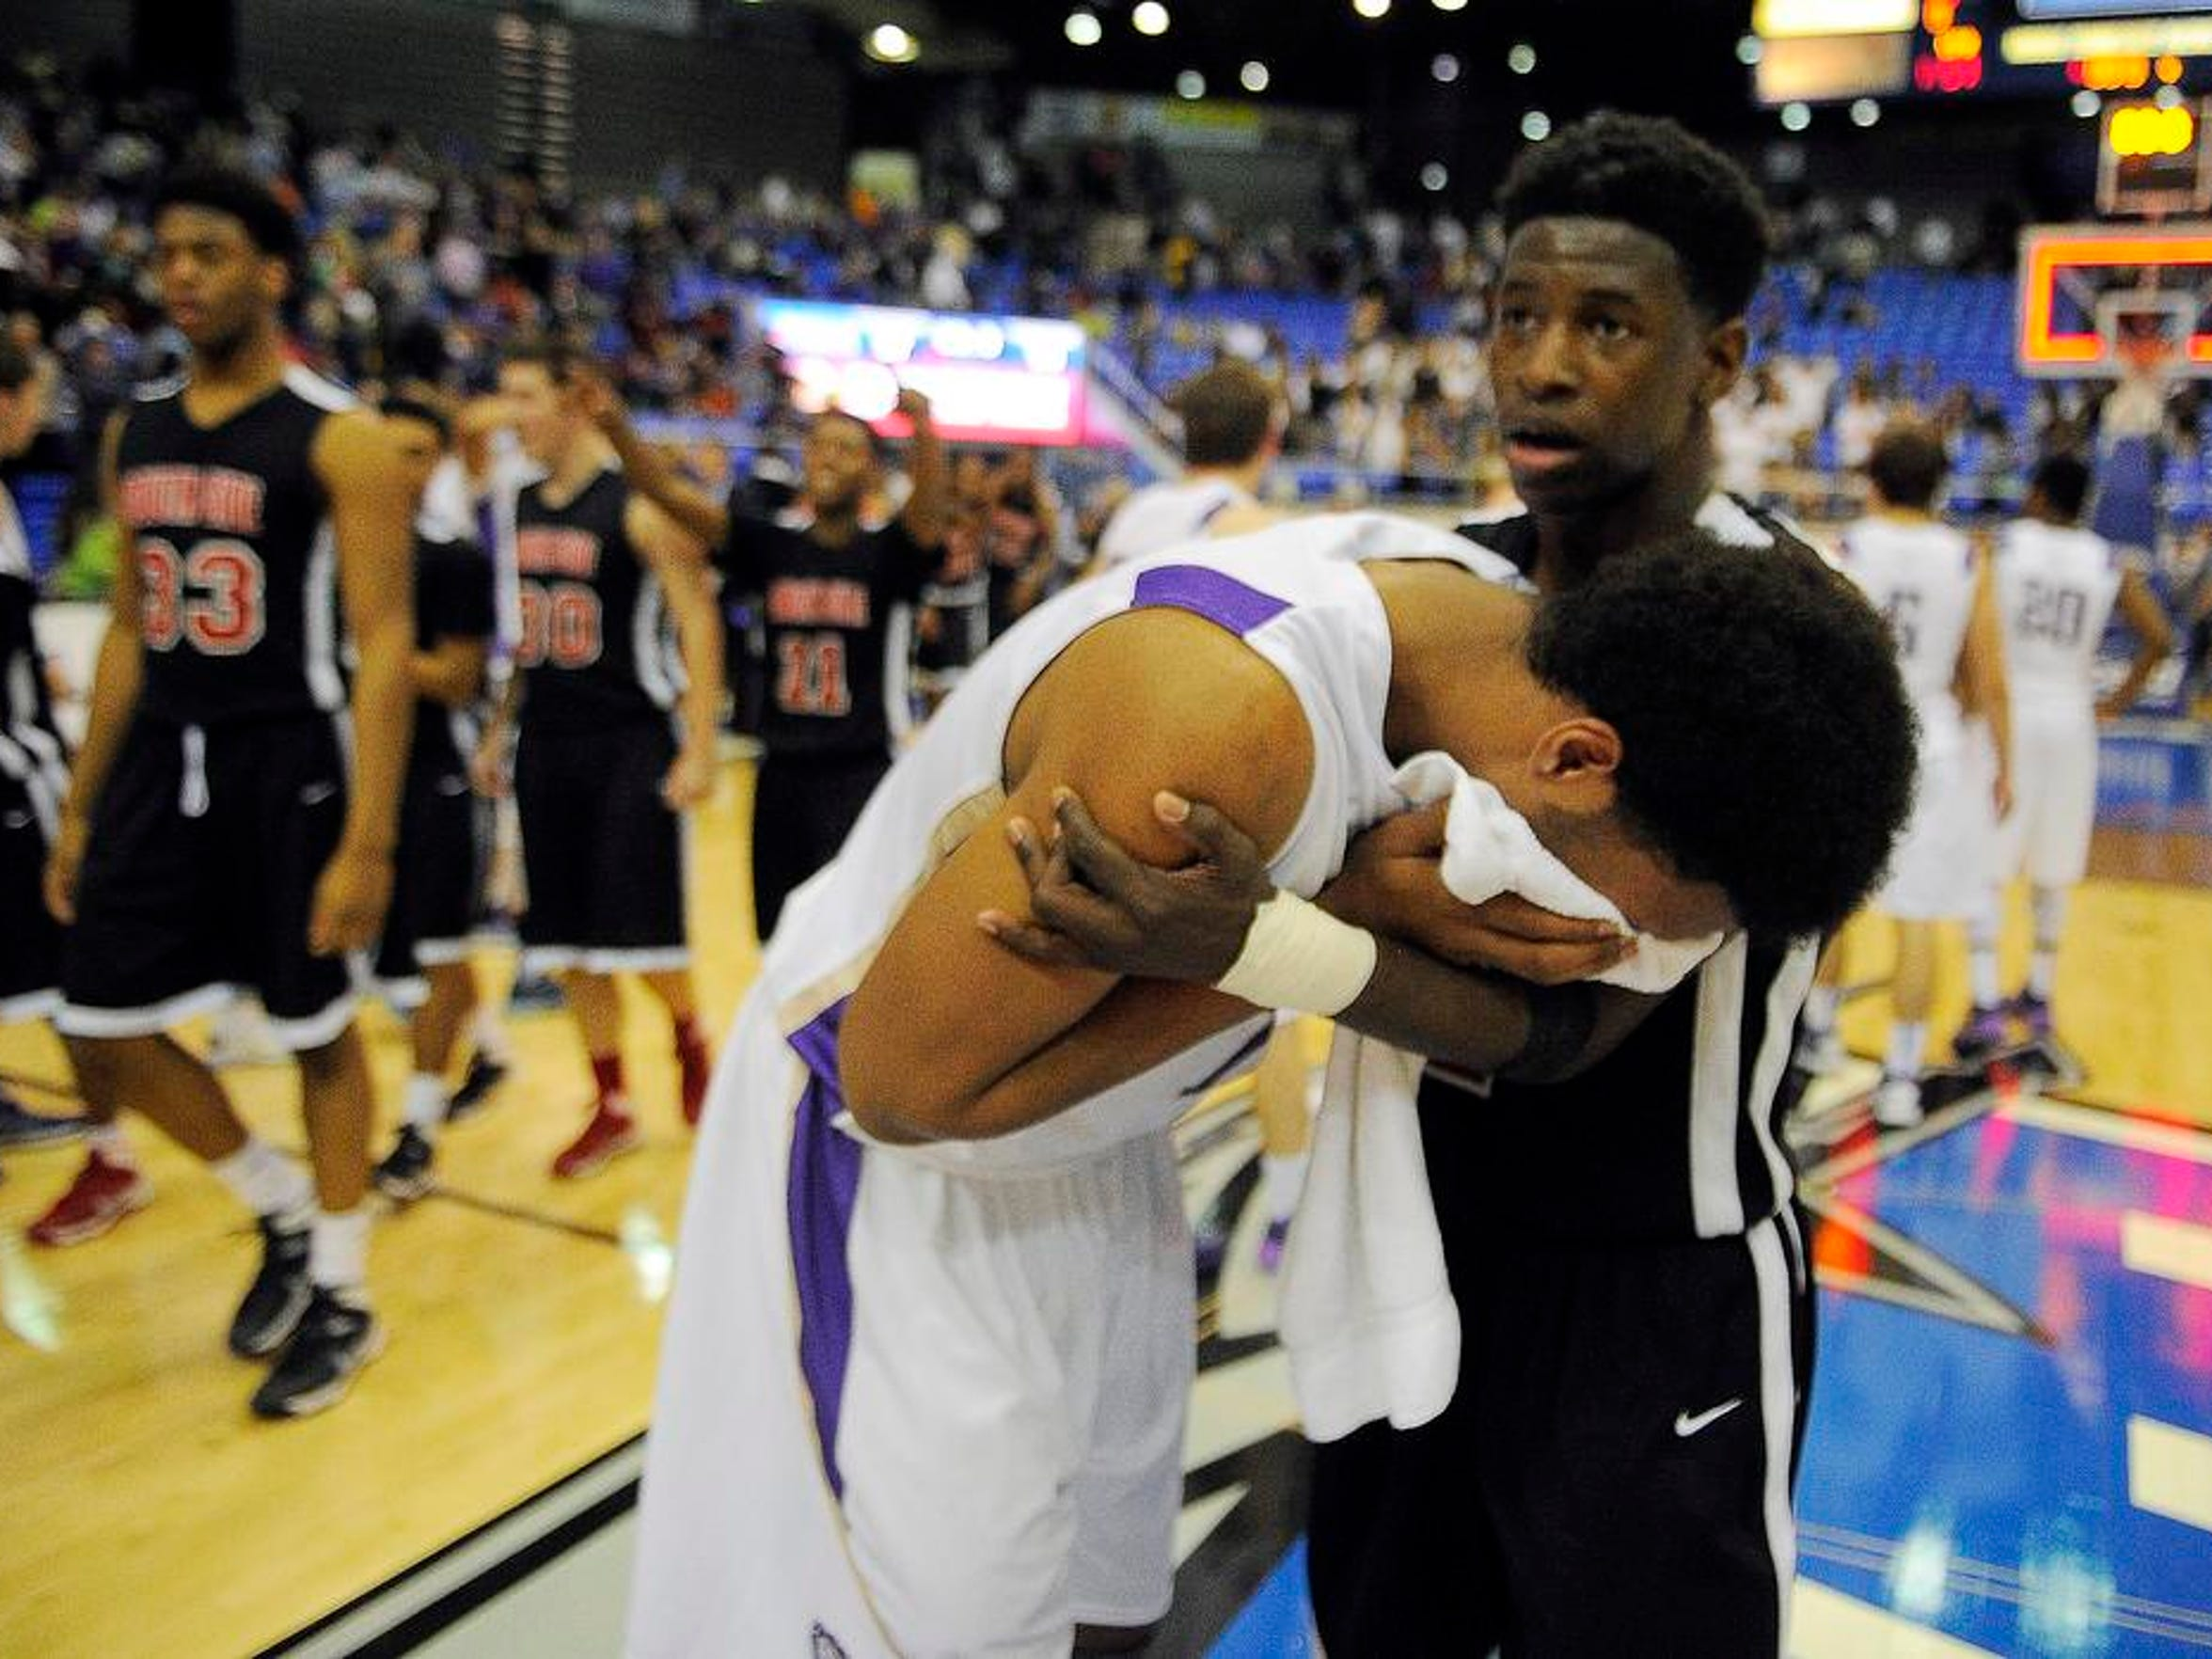 After making the winning shot, South Sides' Jaylen Barford tries to comfort Braxton Blackwell after South Side defeated 59-57 in the boys Class AA basketball semifinals at MTSU on Friday March 14, 2014, in Murfreesboro, TN.